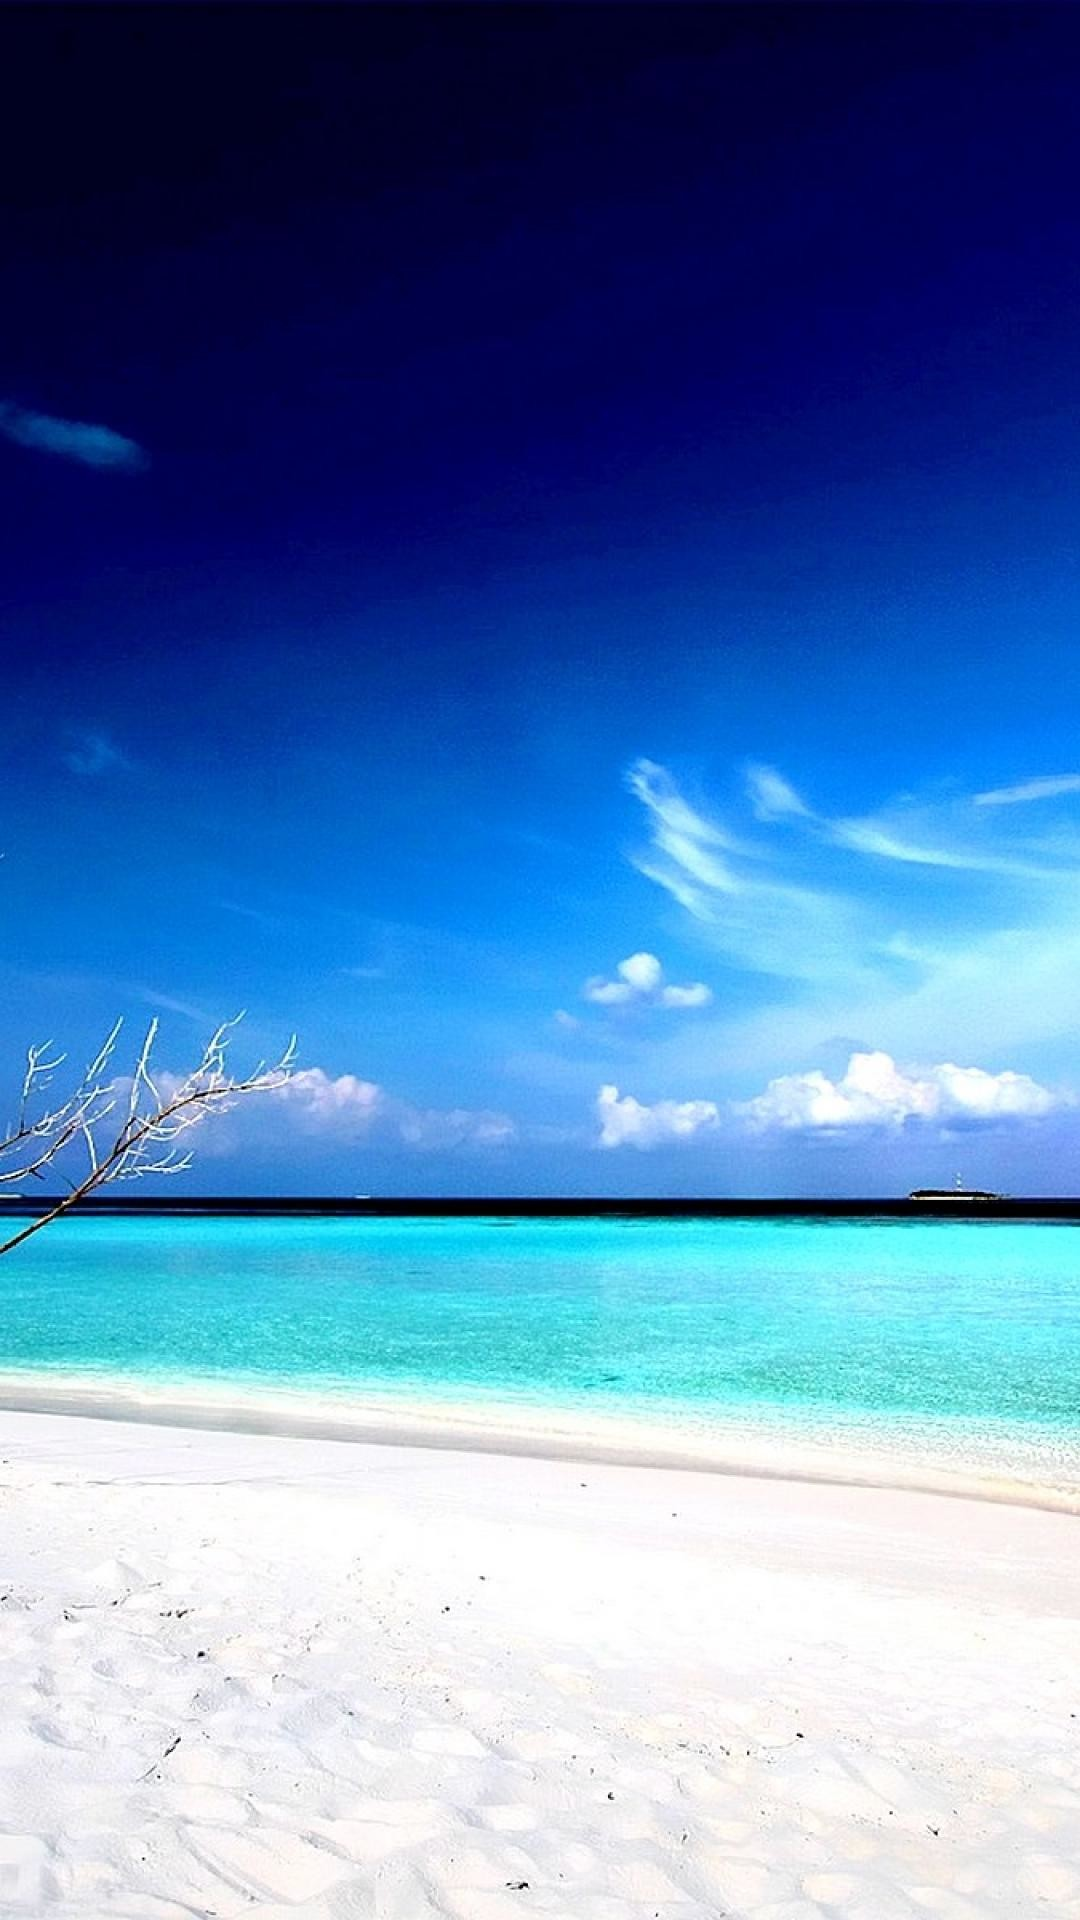 hd beach wallpapers 1080p (68+ images)